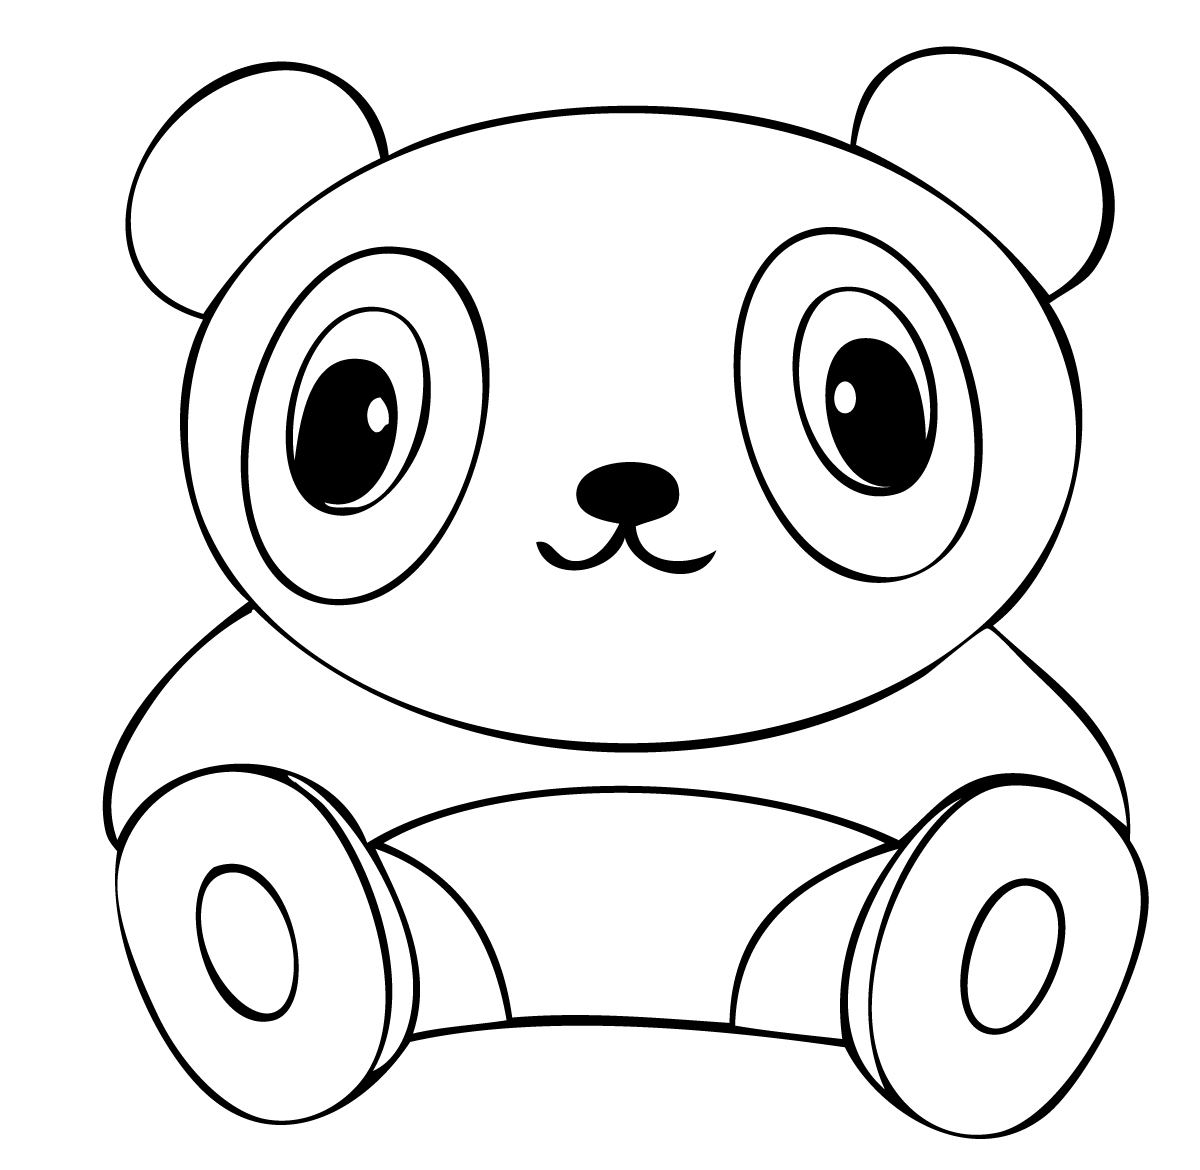 simple panda coloring pages free easy to print panda coloring pages in 2020 panda panda pages simple coloring